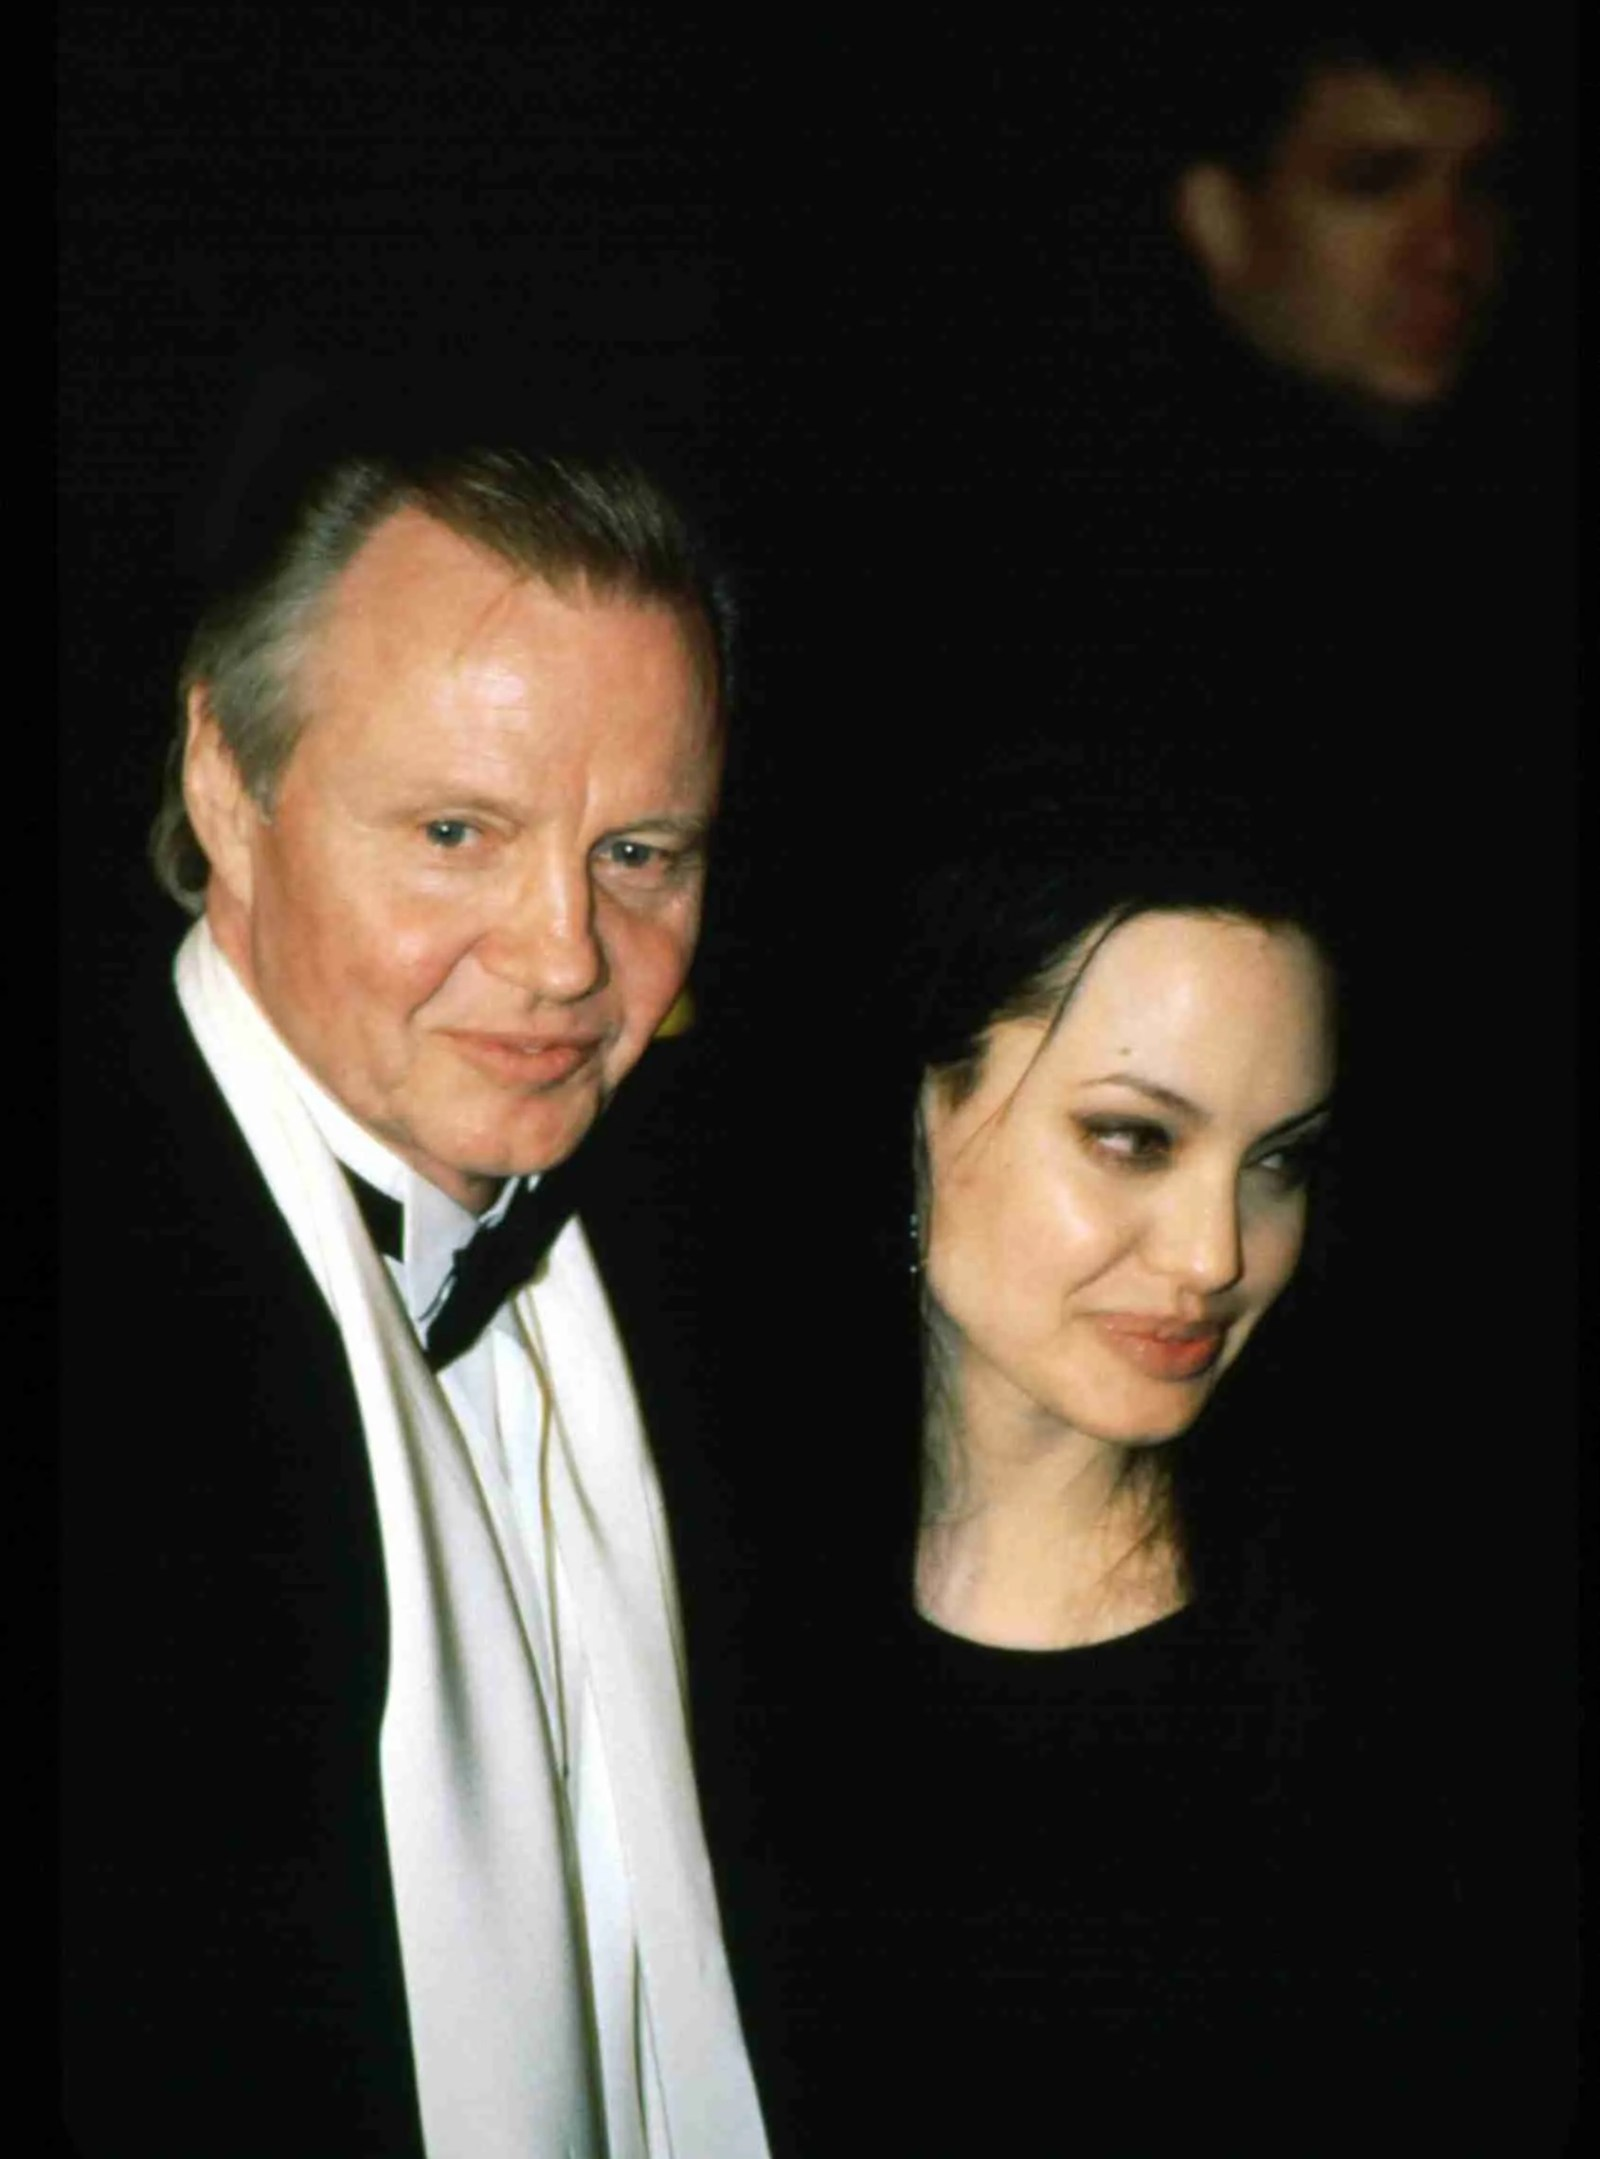 Trump to award National Medal of Arts to actor Jon Voight 7